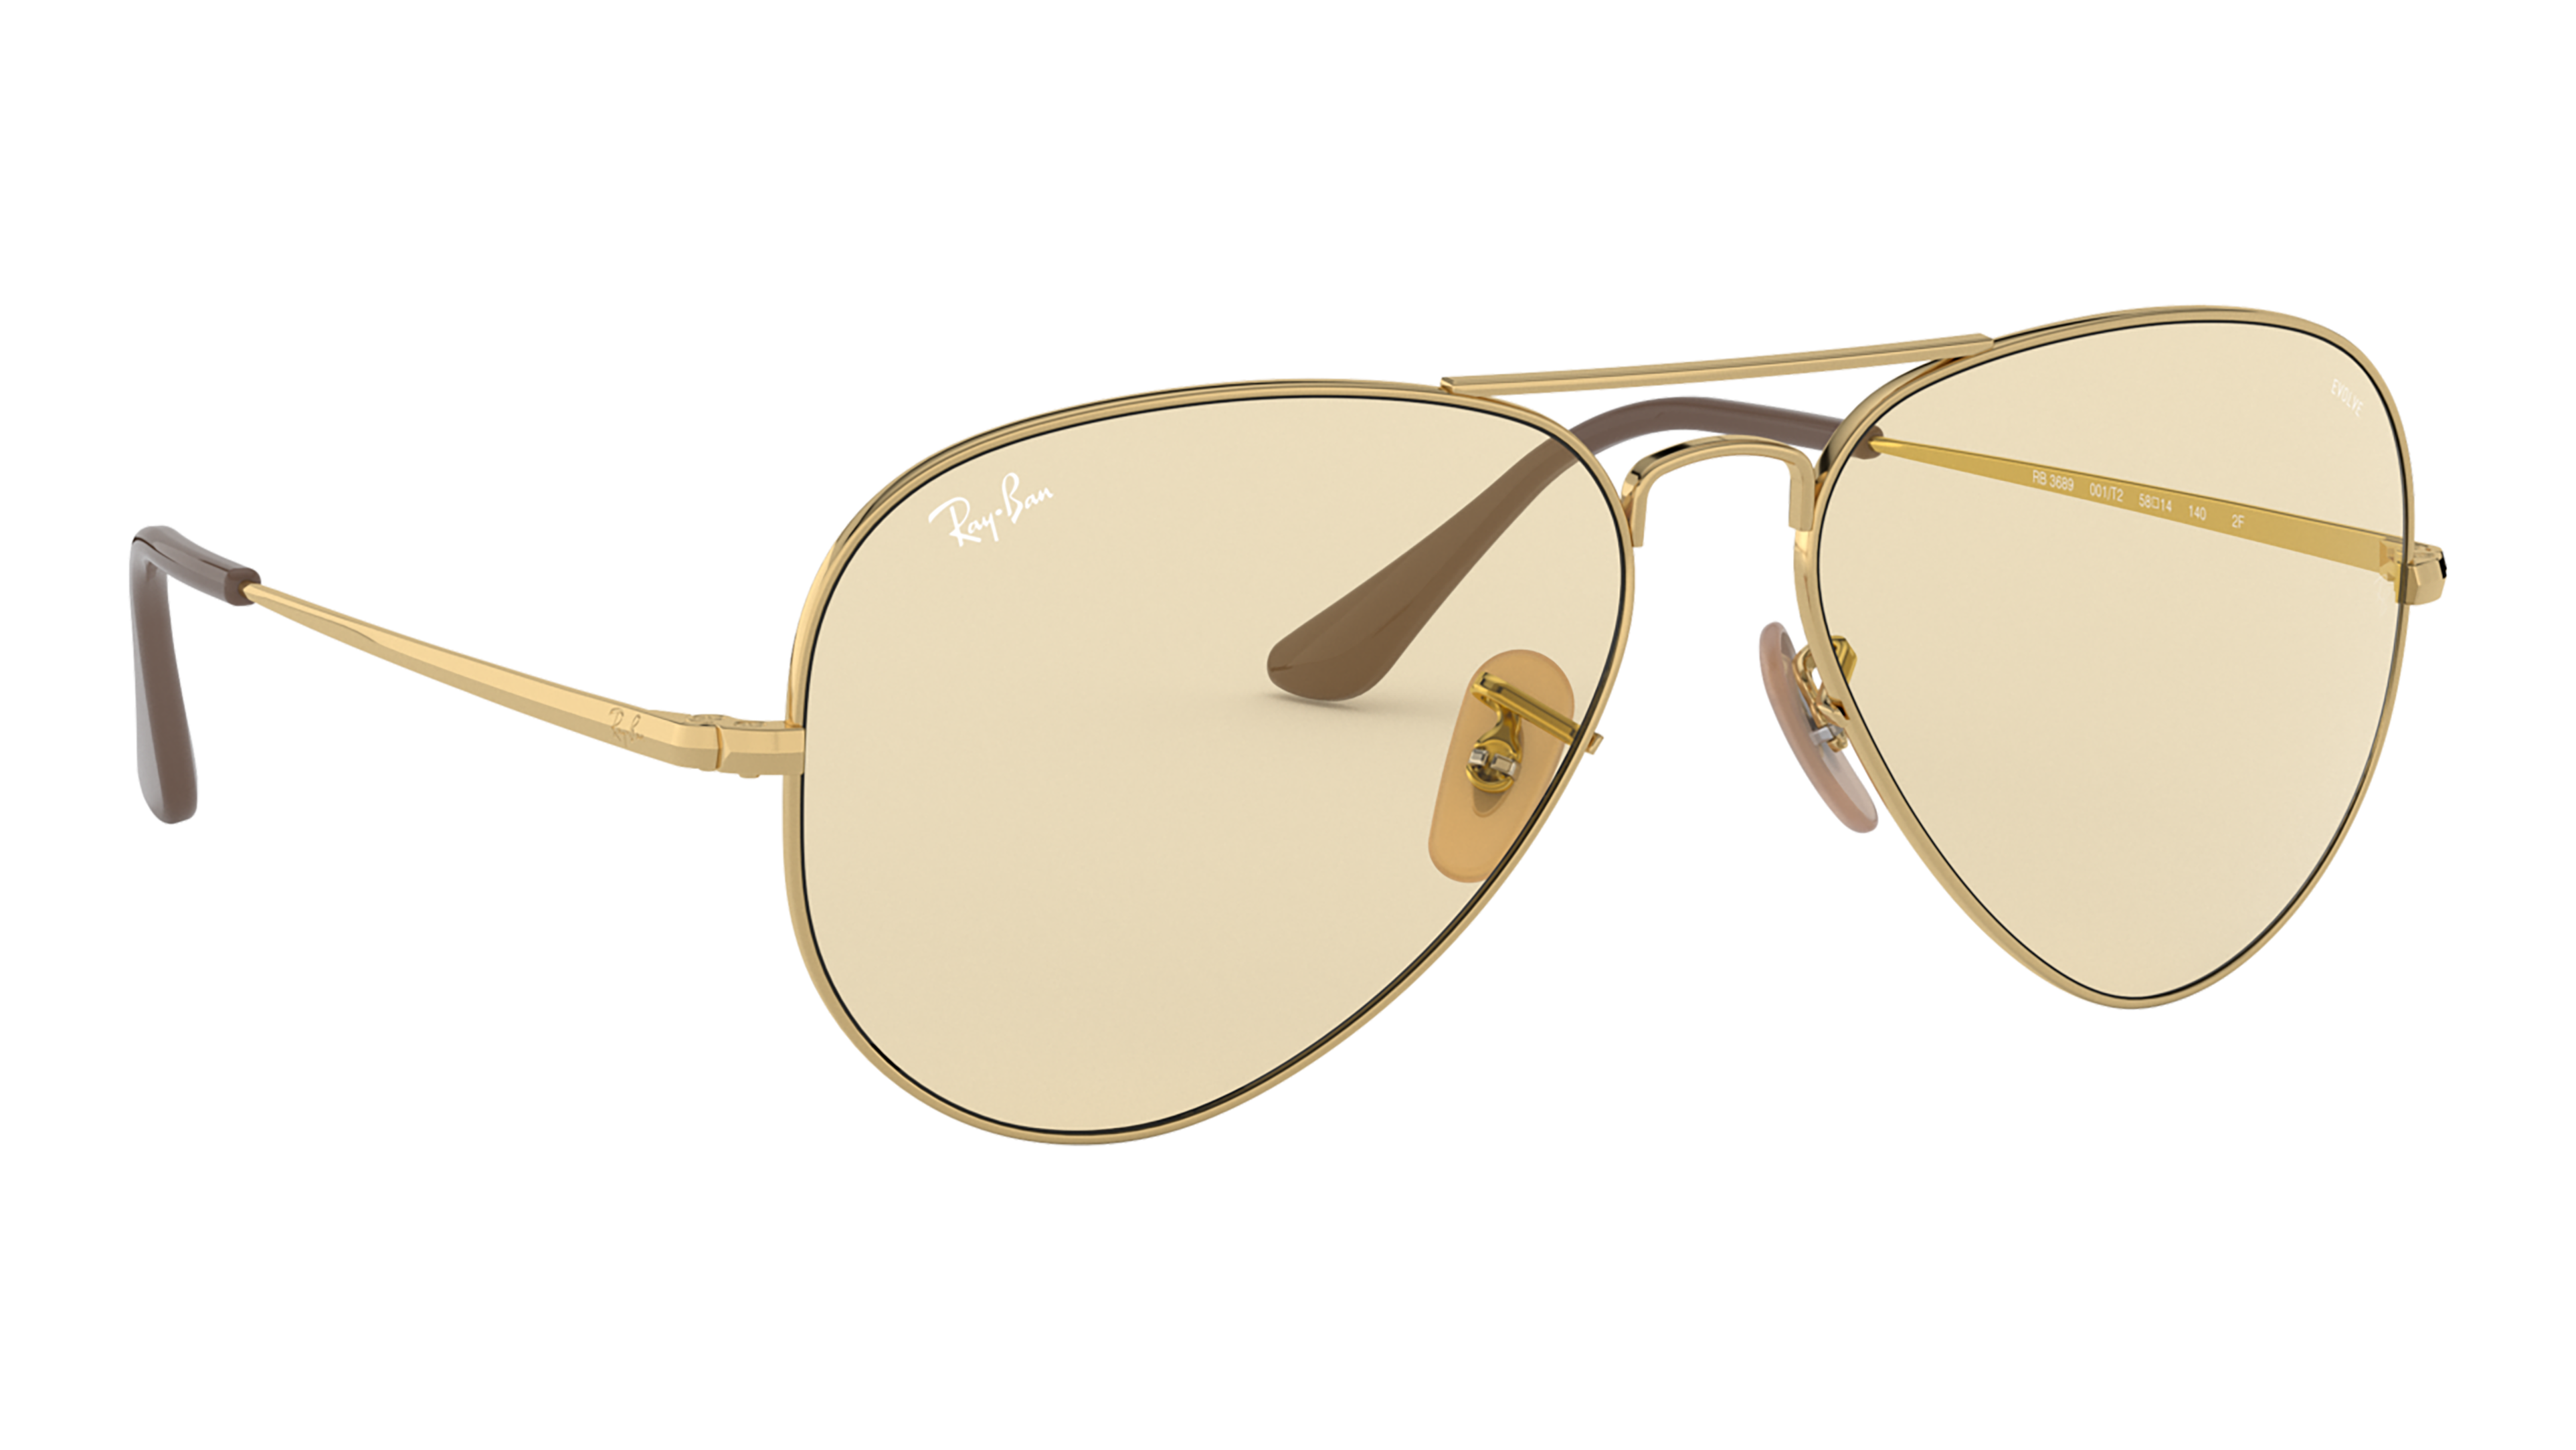 Angle_Right02 Ray-Ban Ray-Ban 0RB3689 001/T2 55/14 Goud/Bruin